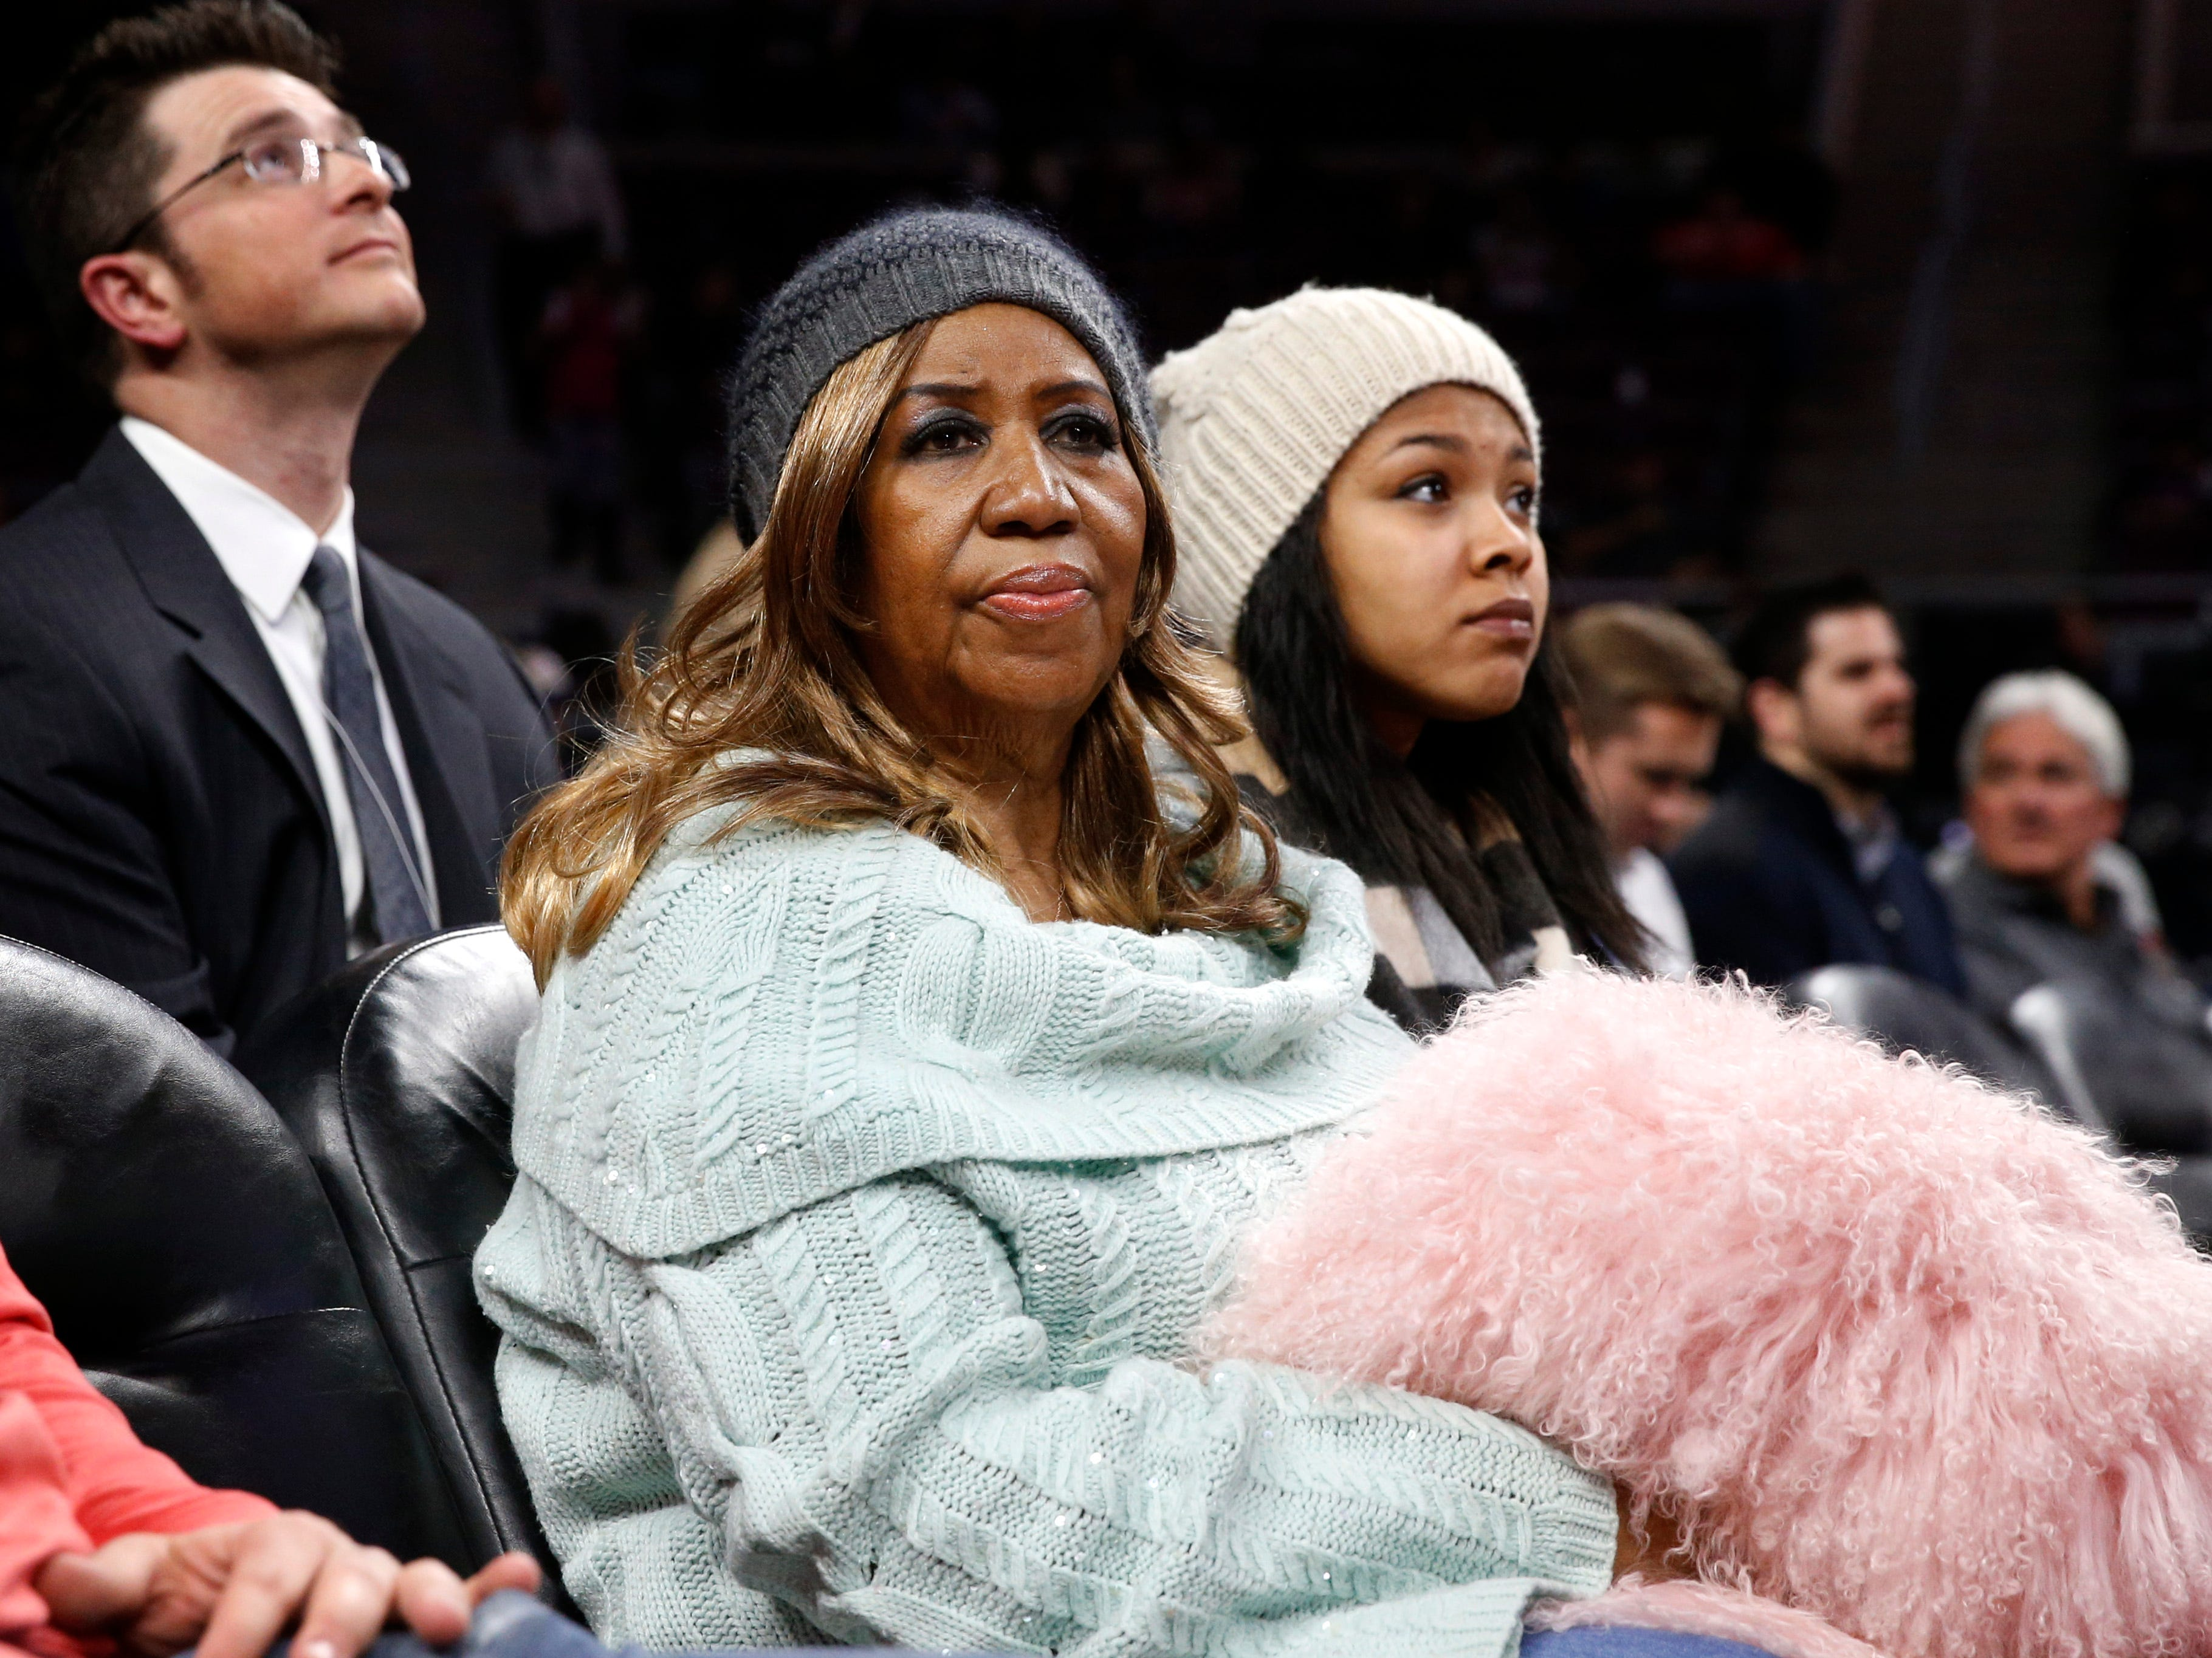 Aretha Franklin watches during an NBA basketball game between the San Antonio Spurs and Detroit Pistons in Auburn Hills, Mich., Wednesday, Feb. 11, 2015. (AP Photo/Paul Sancya) ORG XMIT: MIPS115